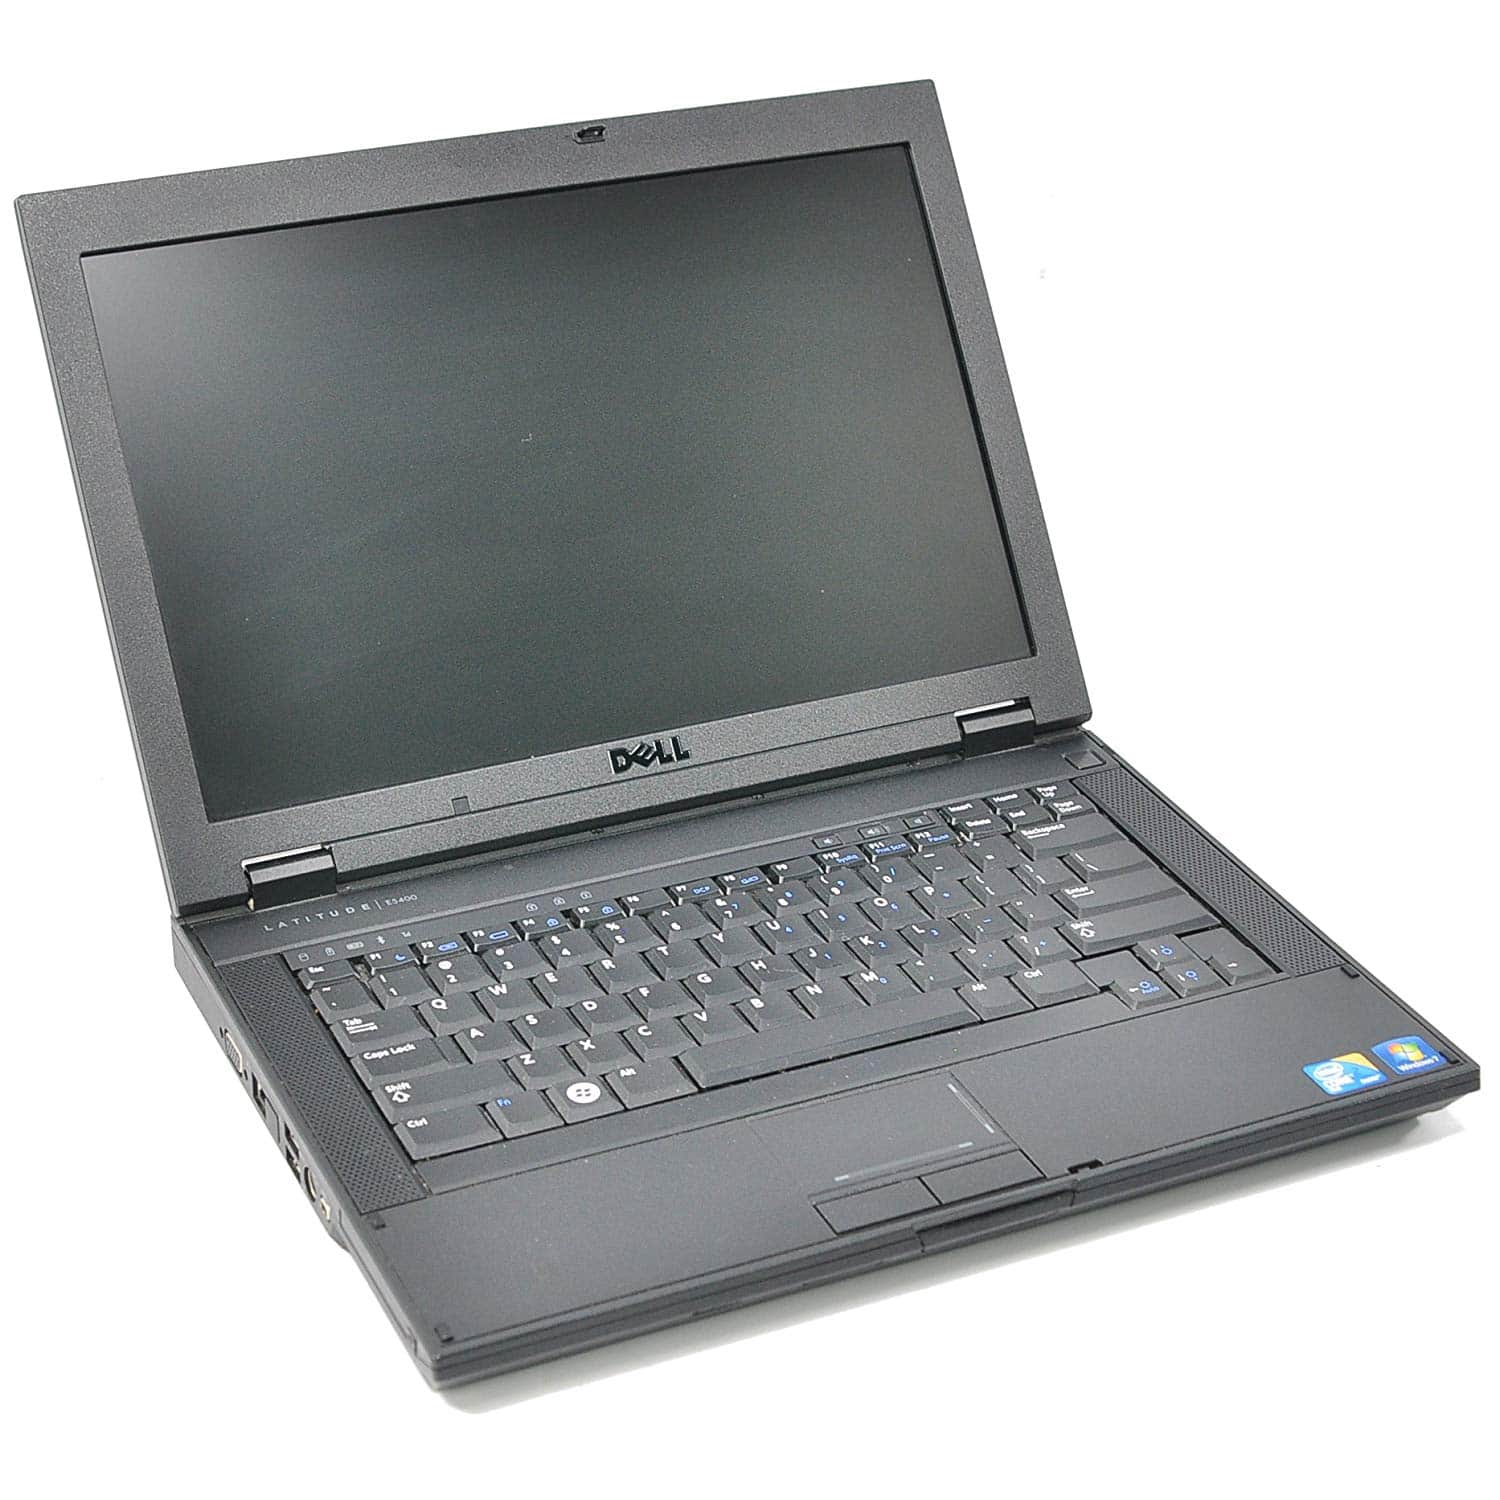 Dell Latitude E5400 | $100 laptop